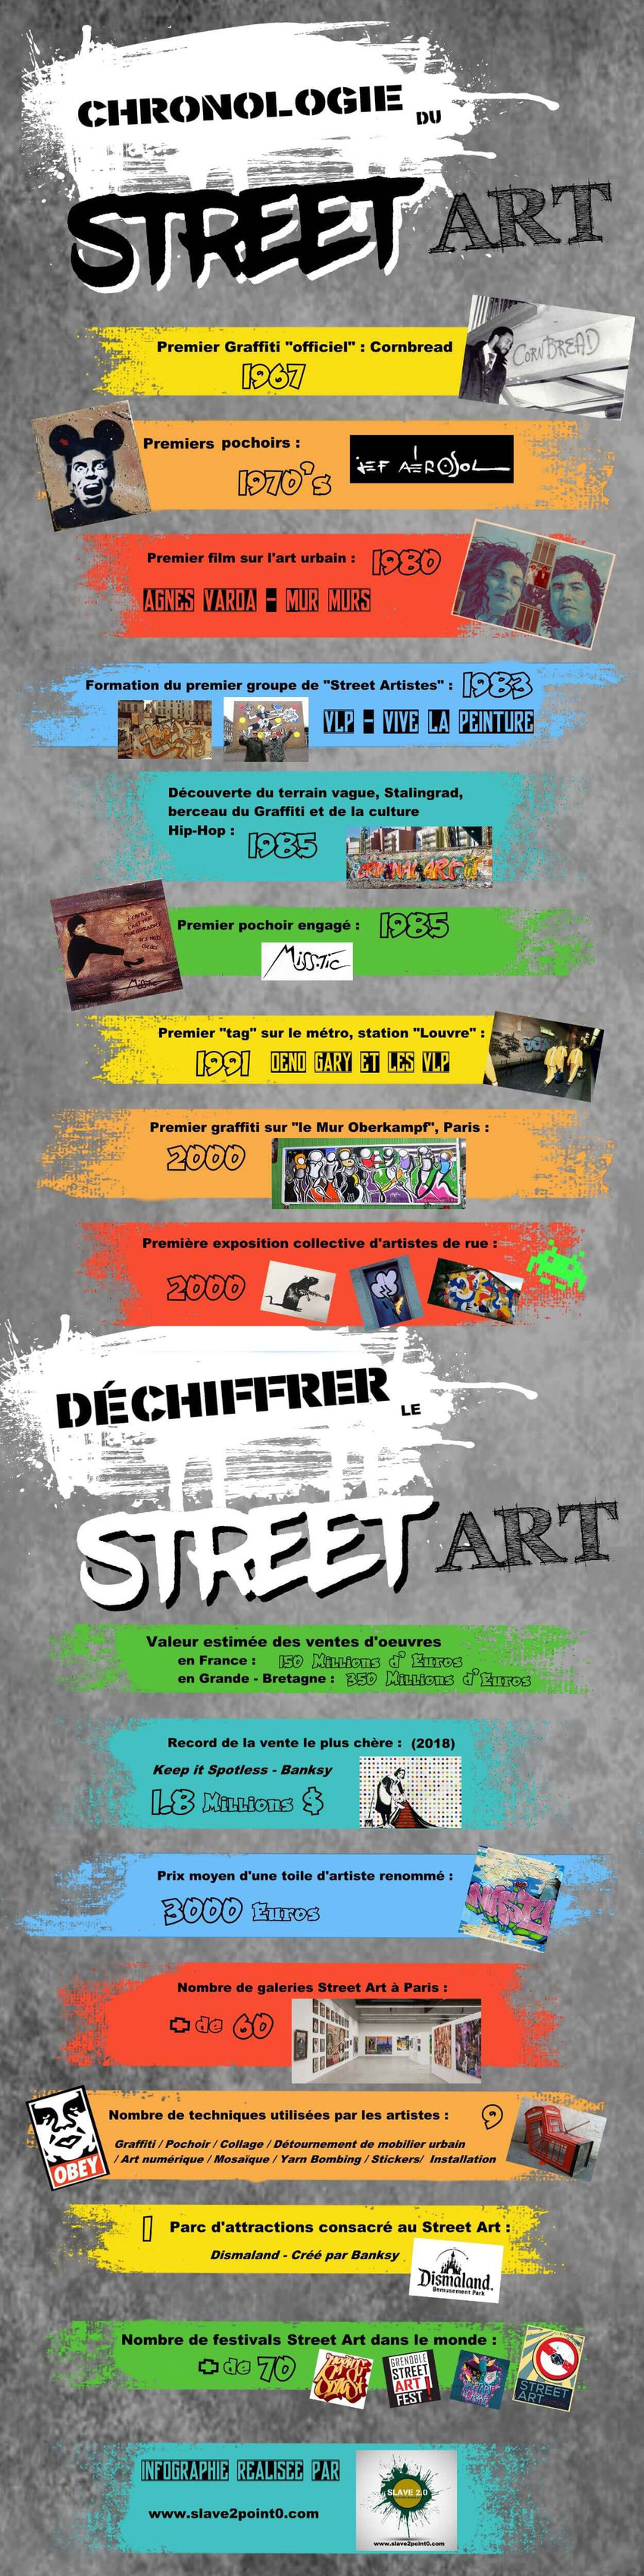 infographie-street-art-chronologie-chiffre-cle-statistique.jpg